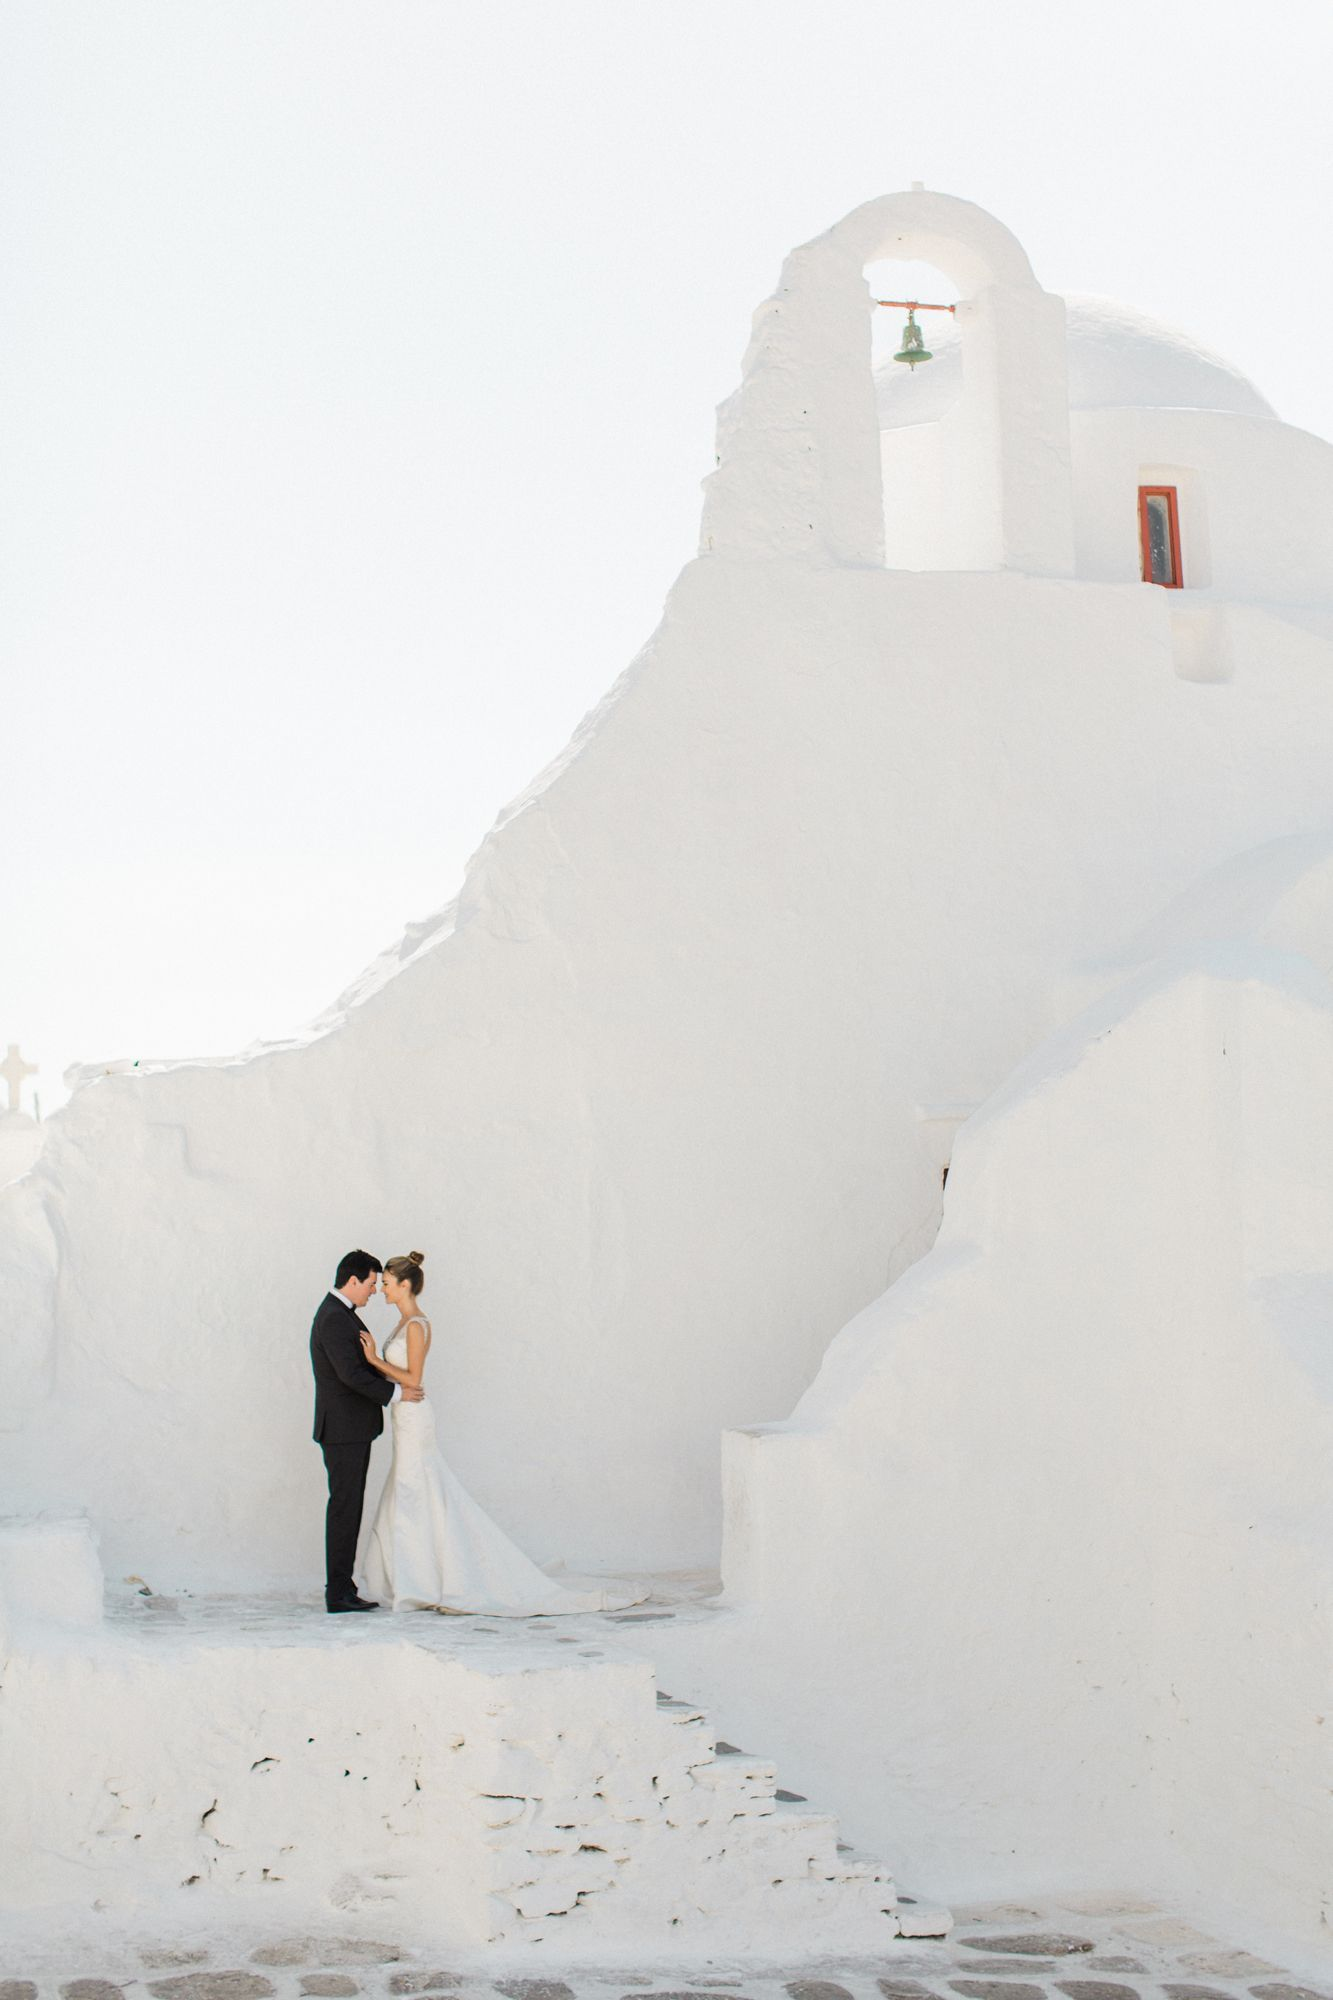 Dress for destination beach wedding guest  These  Destination Wedding Photos Are About To Inspire Some